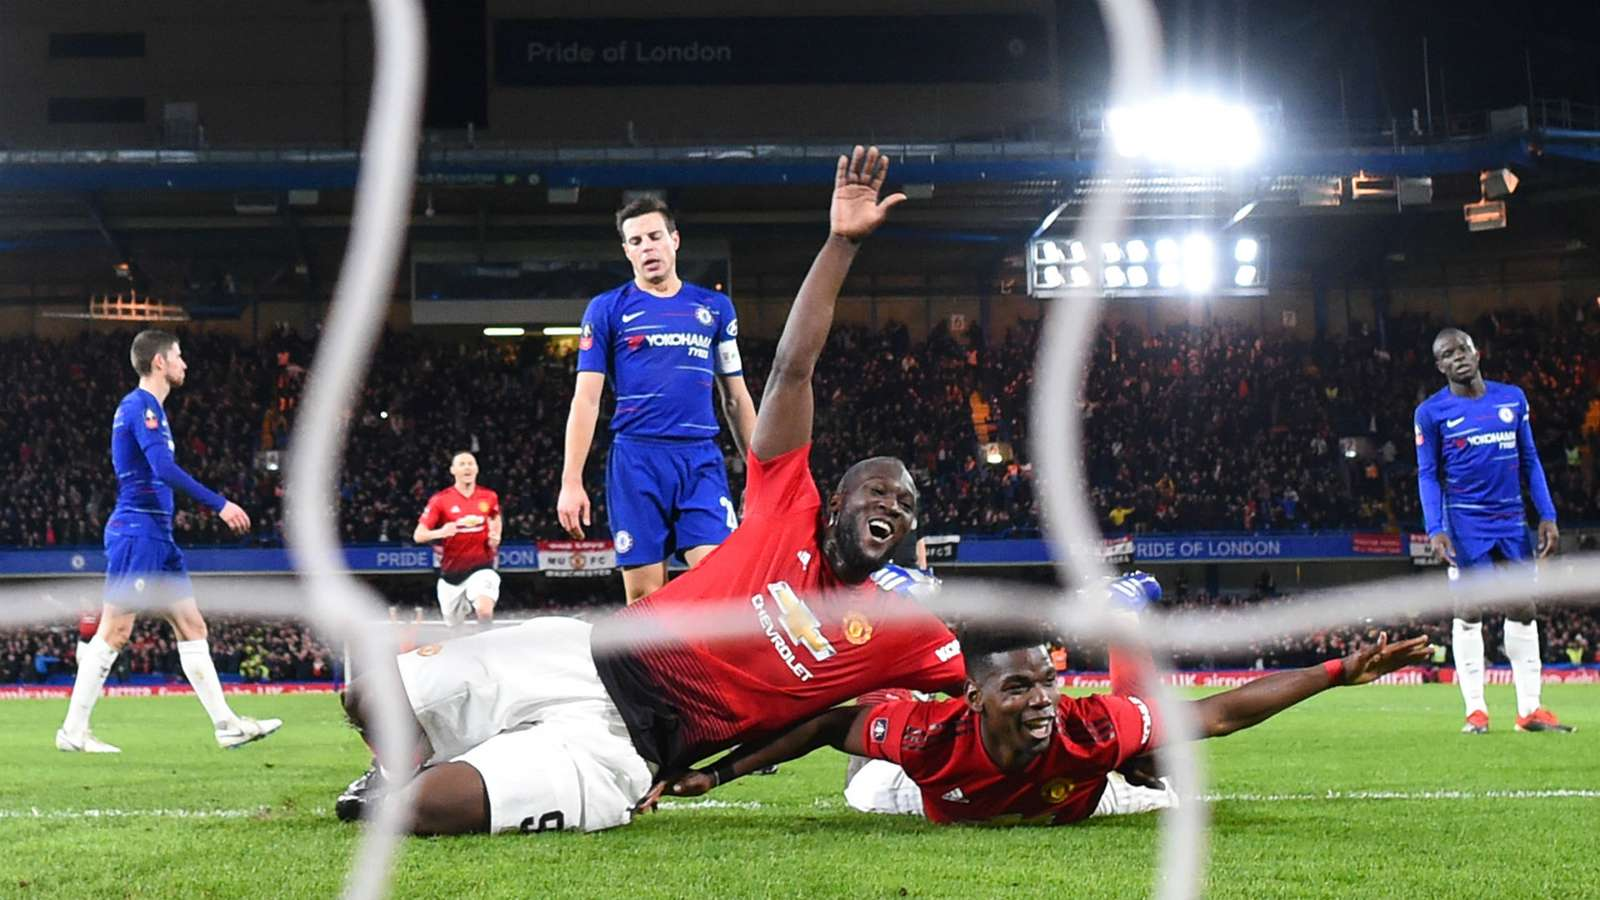 pogba cropped p5pyges1qgft121l0s7gnj2uy - Chelsea vs Manchester United 0-2: FA Cup Match Report & Highlights [Watch Video]